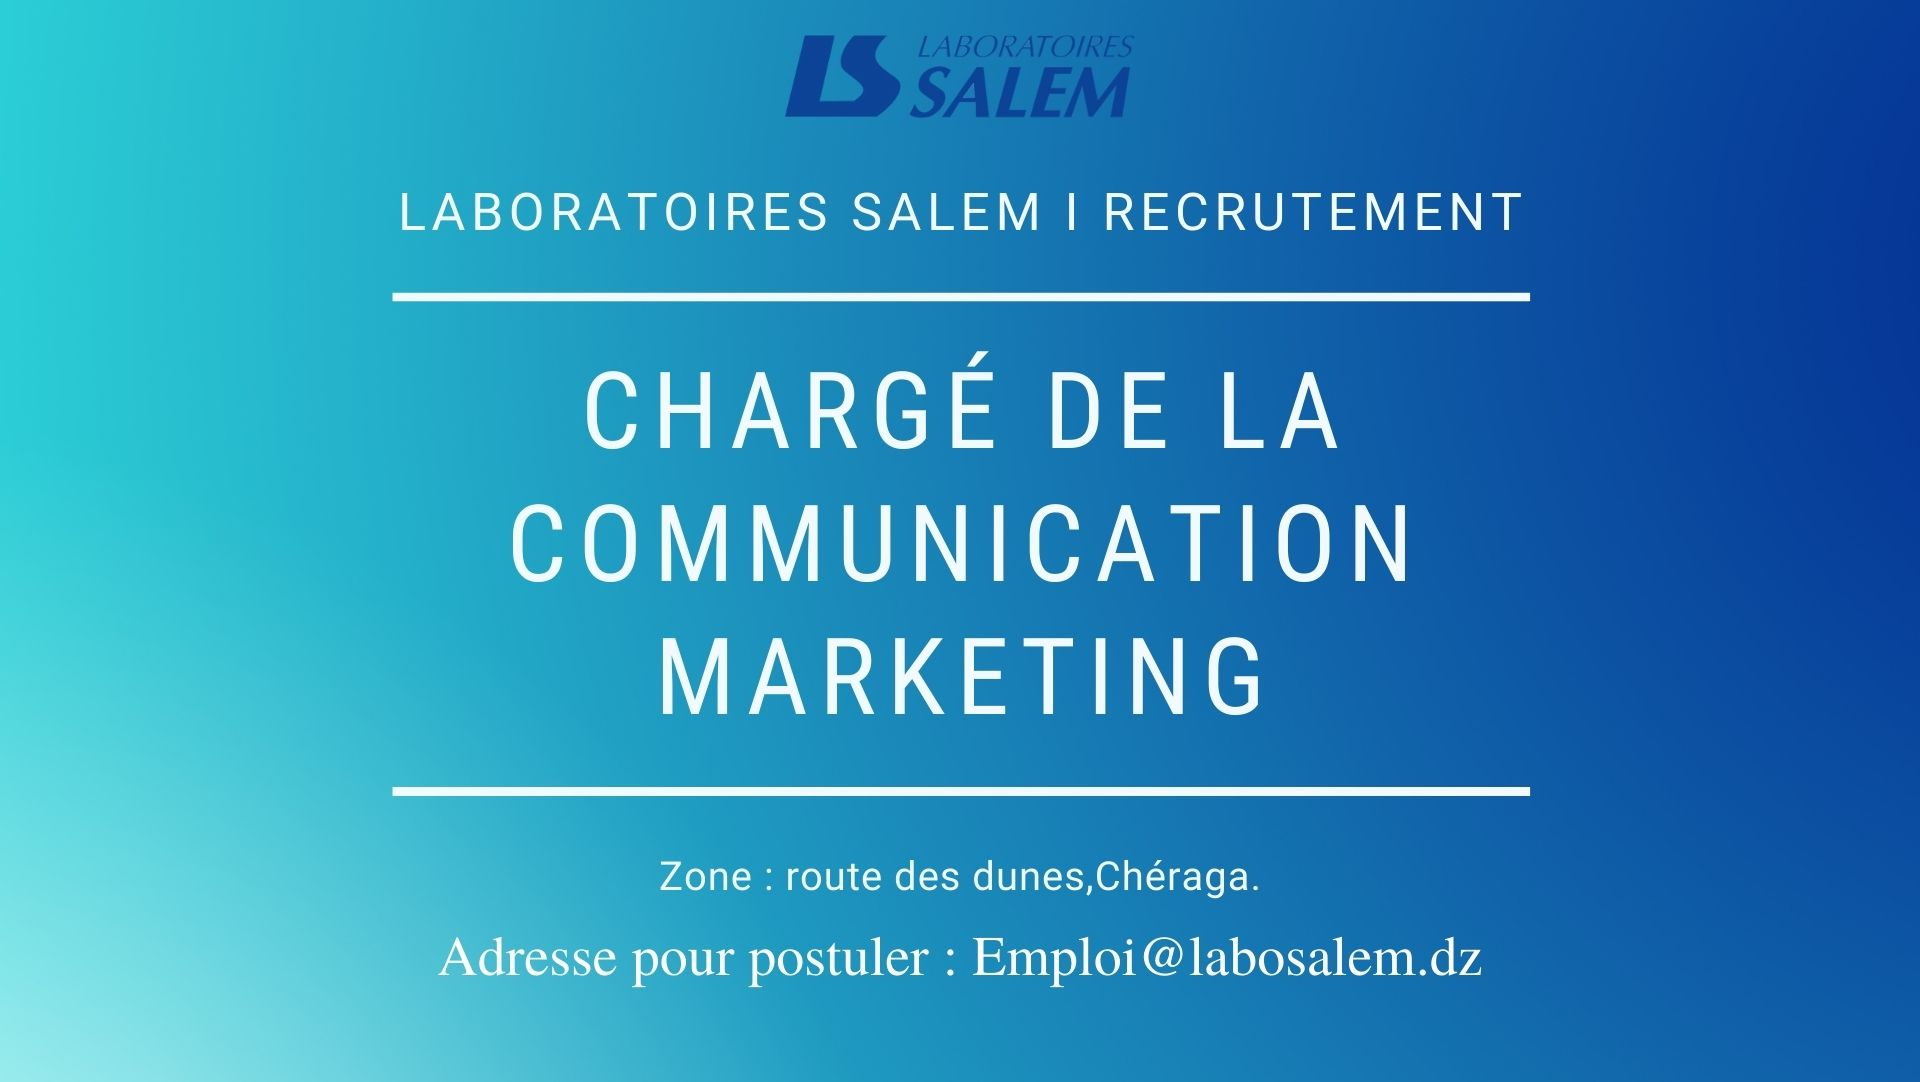 marketing, recrutement, communication, laboratoires salem, labosalem, emploi, travail, job, khedma, wadifa, diplomes, pro, informatique, développement web, infographe, médecine marketing, pharma